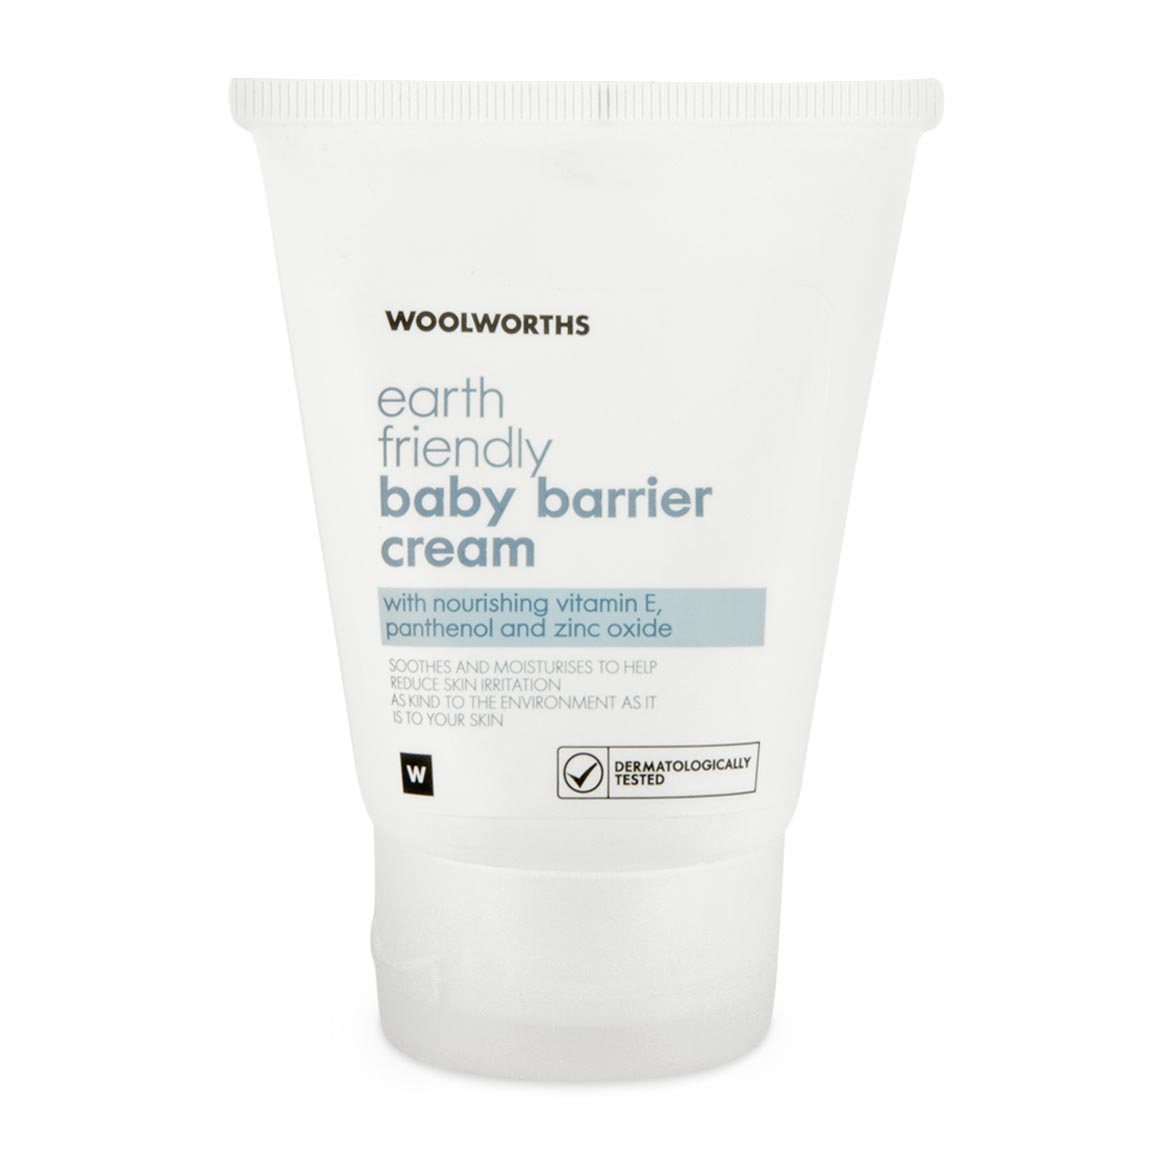 WOOLWORTHS Earth Friendly Baby Barrier Cream